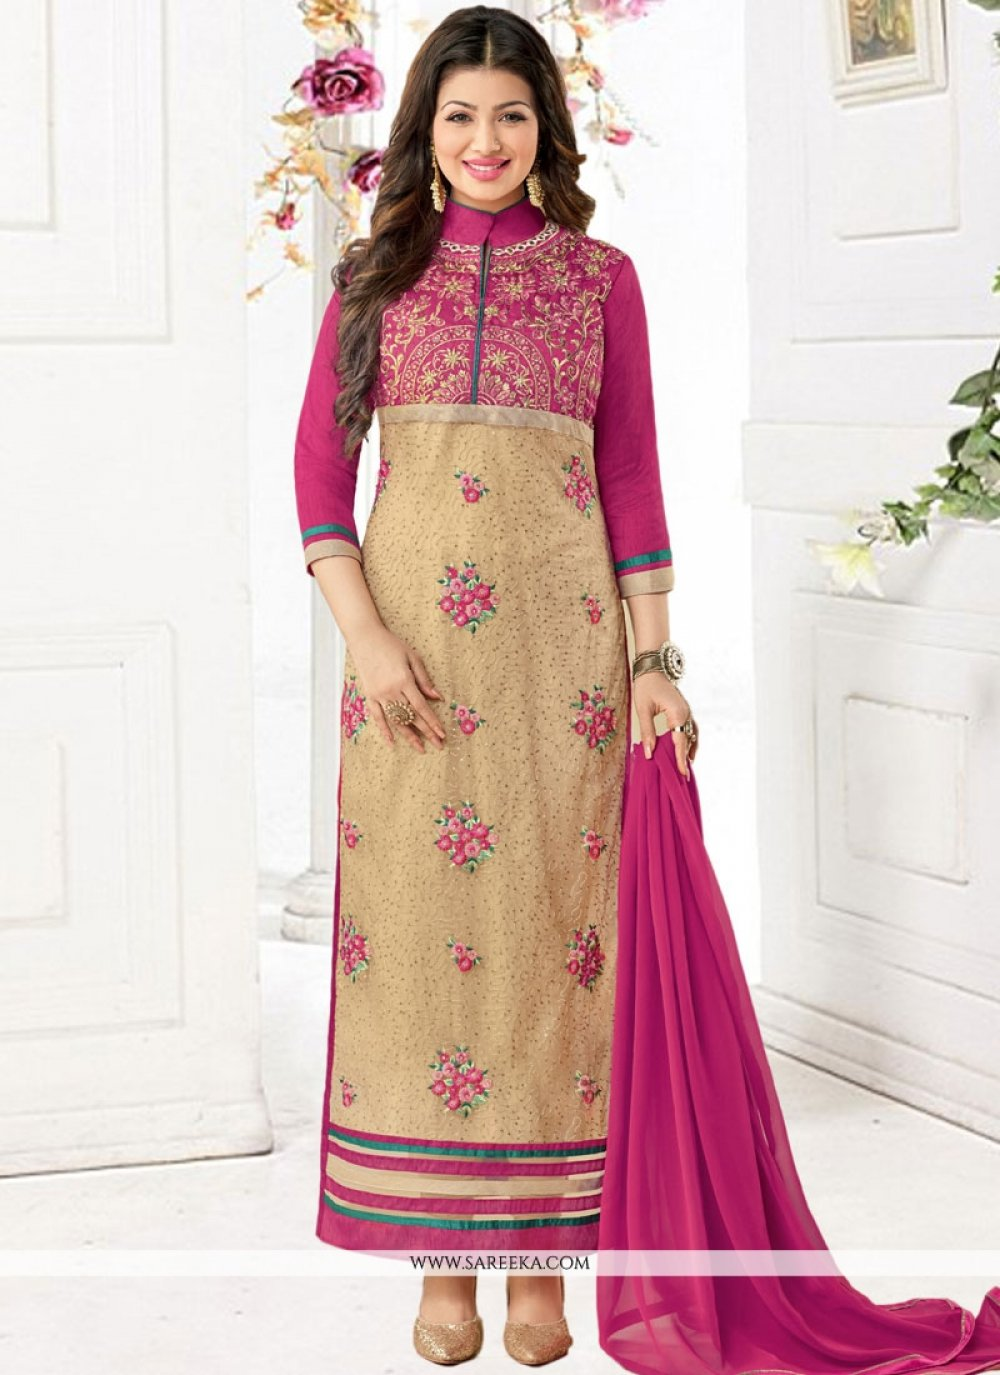 Ayesha Takia Beige and Hot Pink Faux Georgette Embroidered Work Churidar Designer Suit